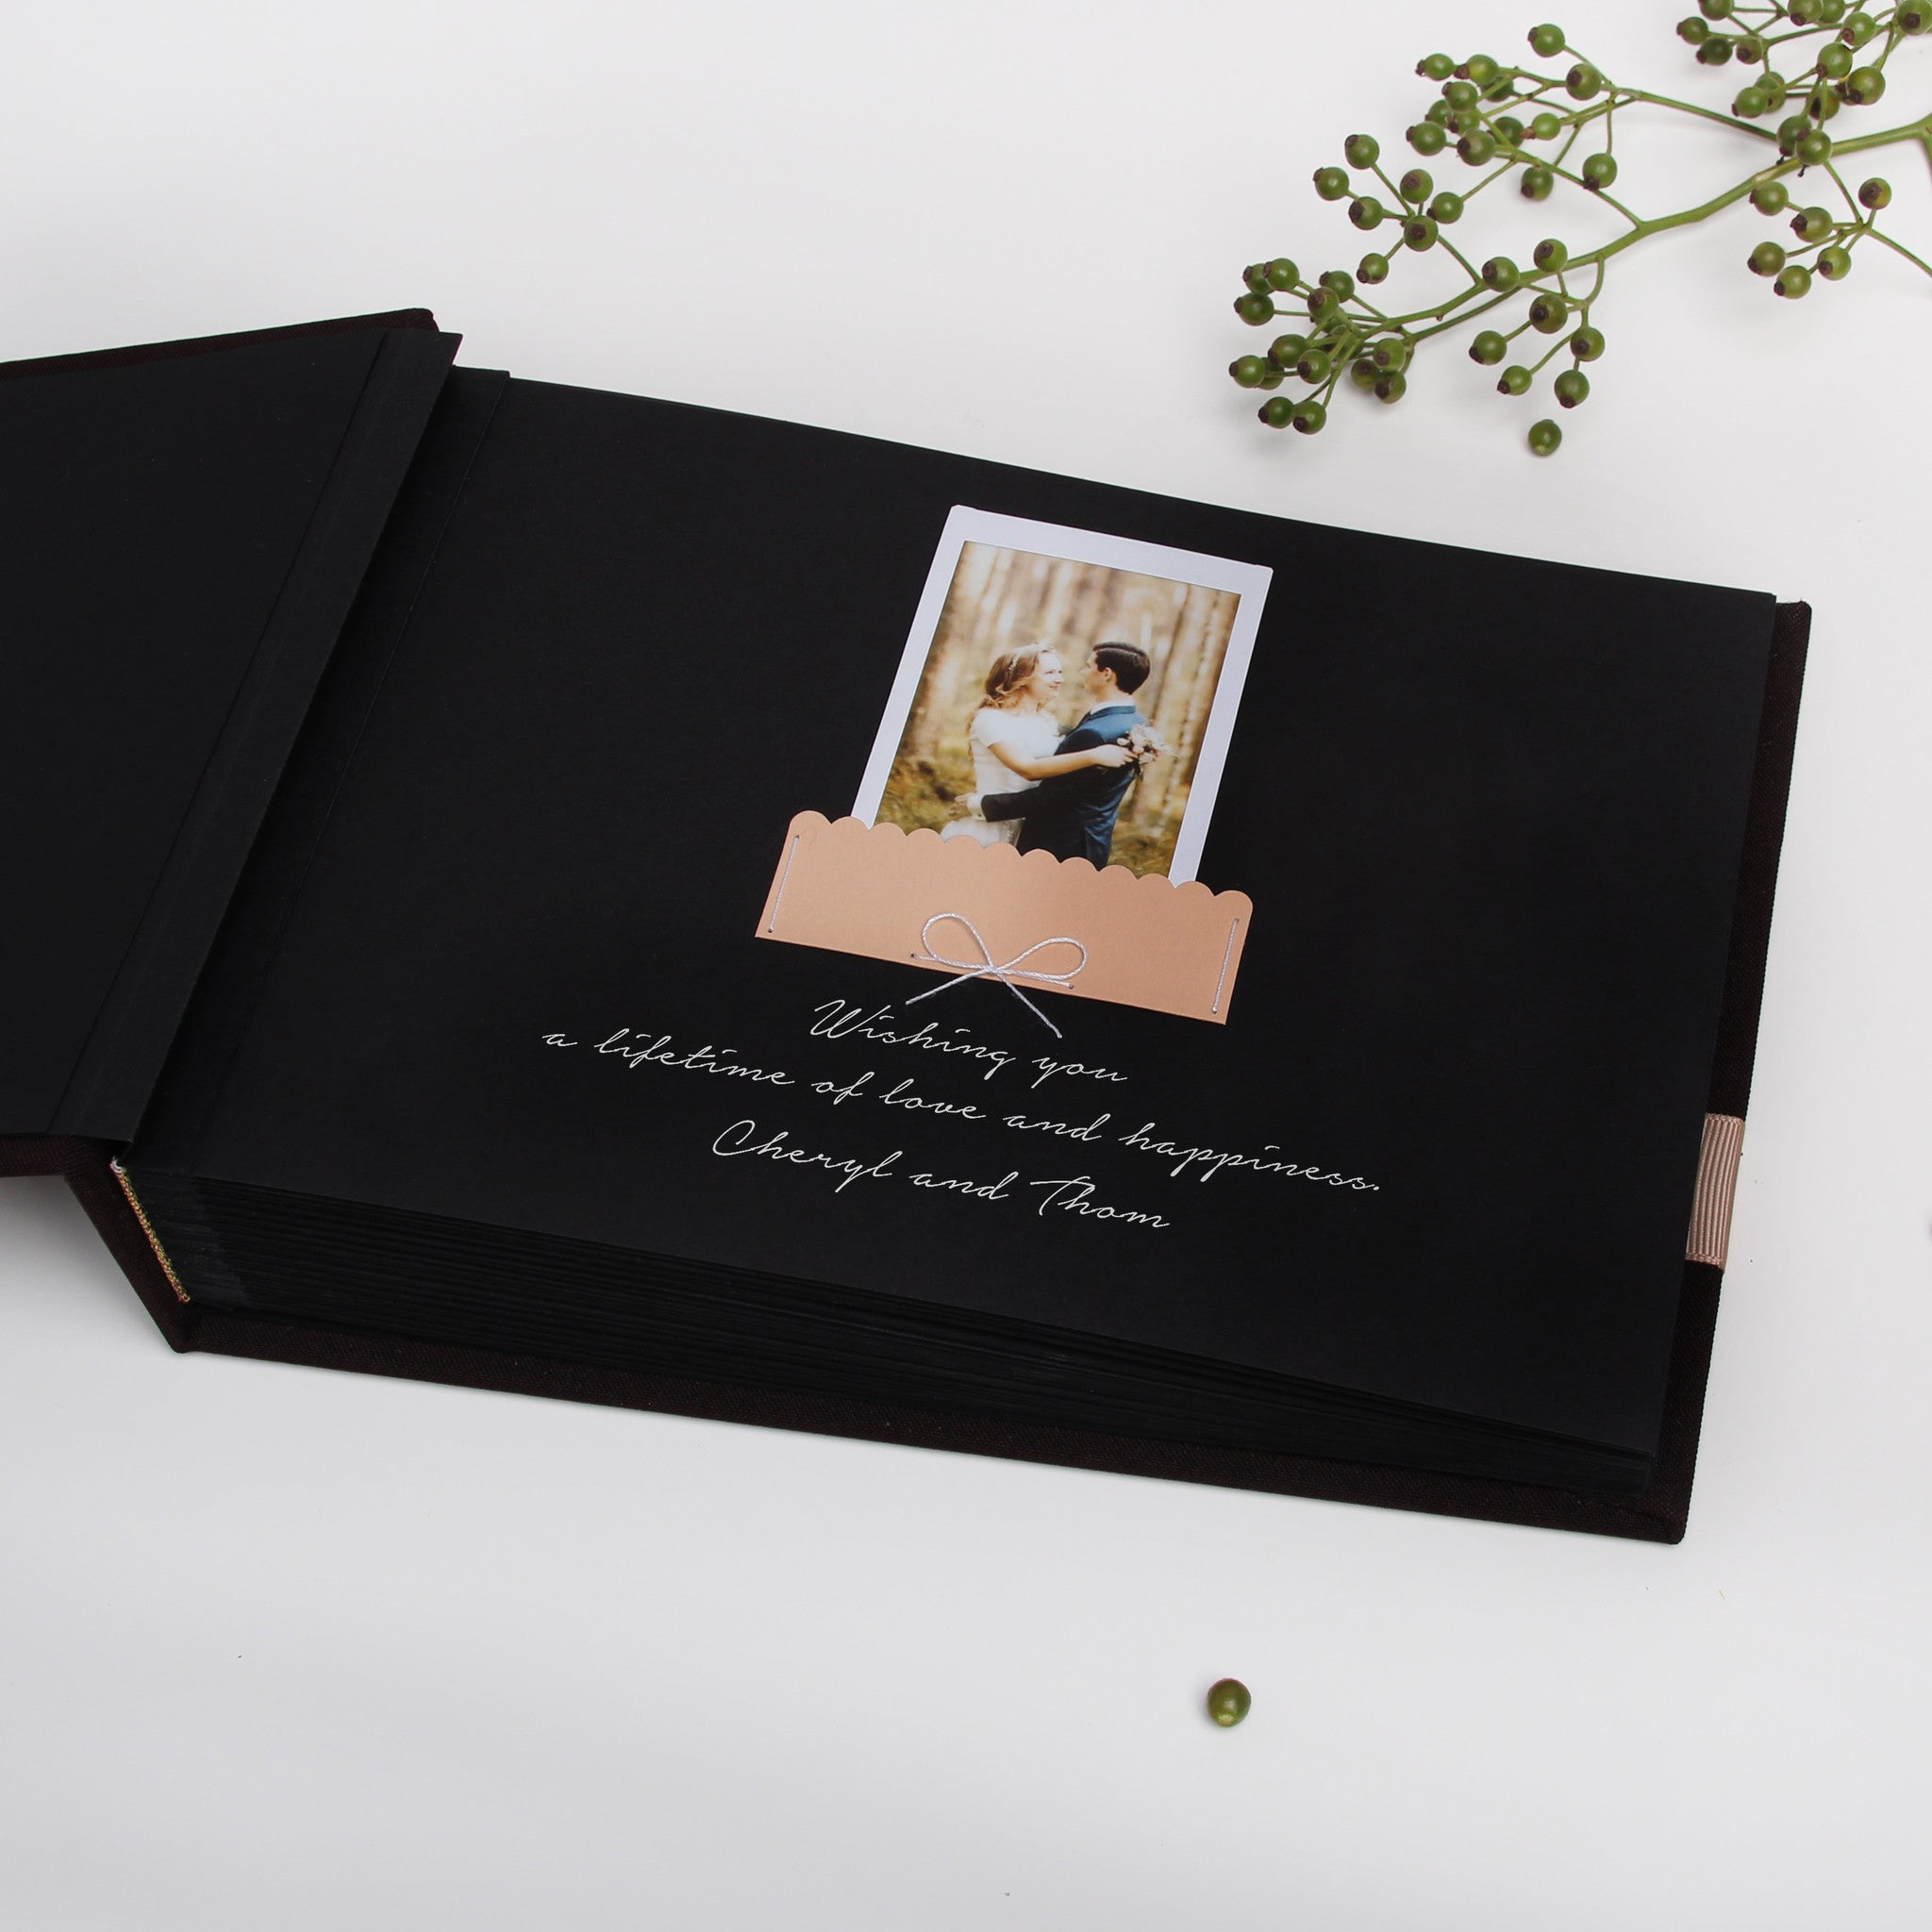 Chocolate Wedding Guest Book Album Cream Ribbon with Personalised first Page by Liumy - Liumy